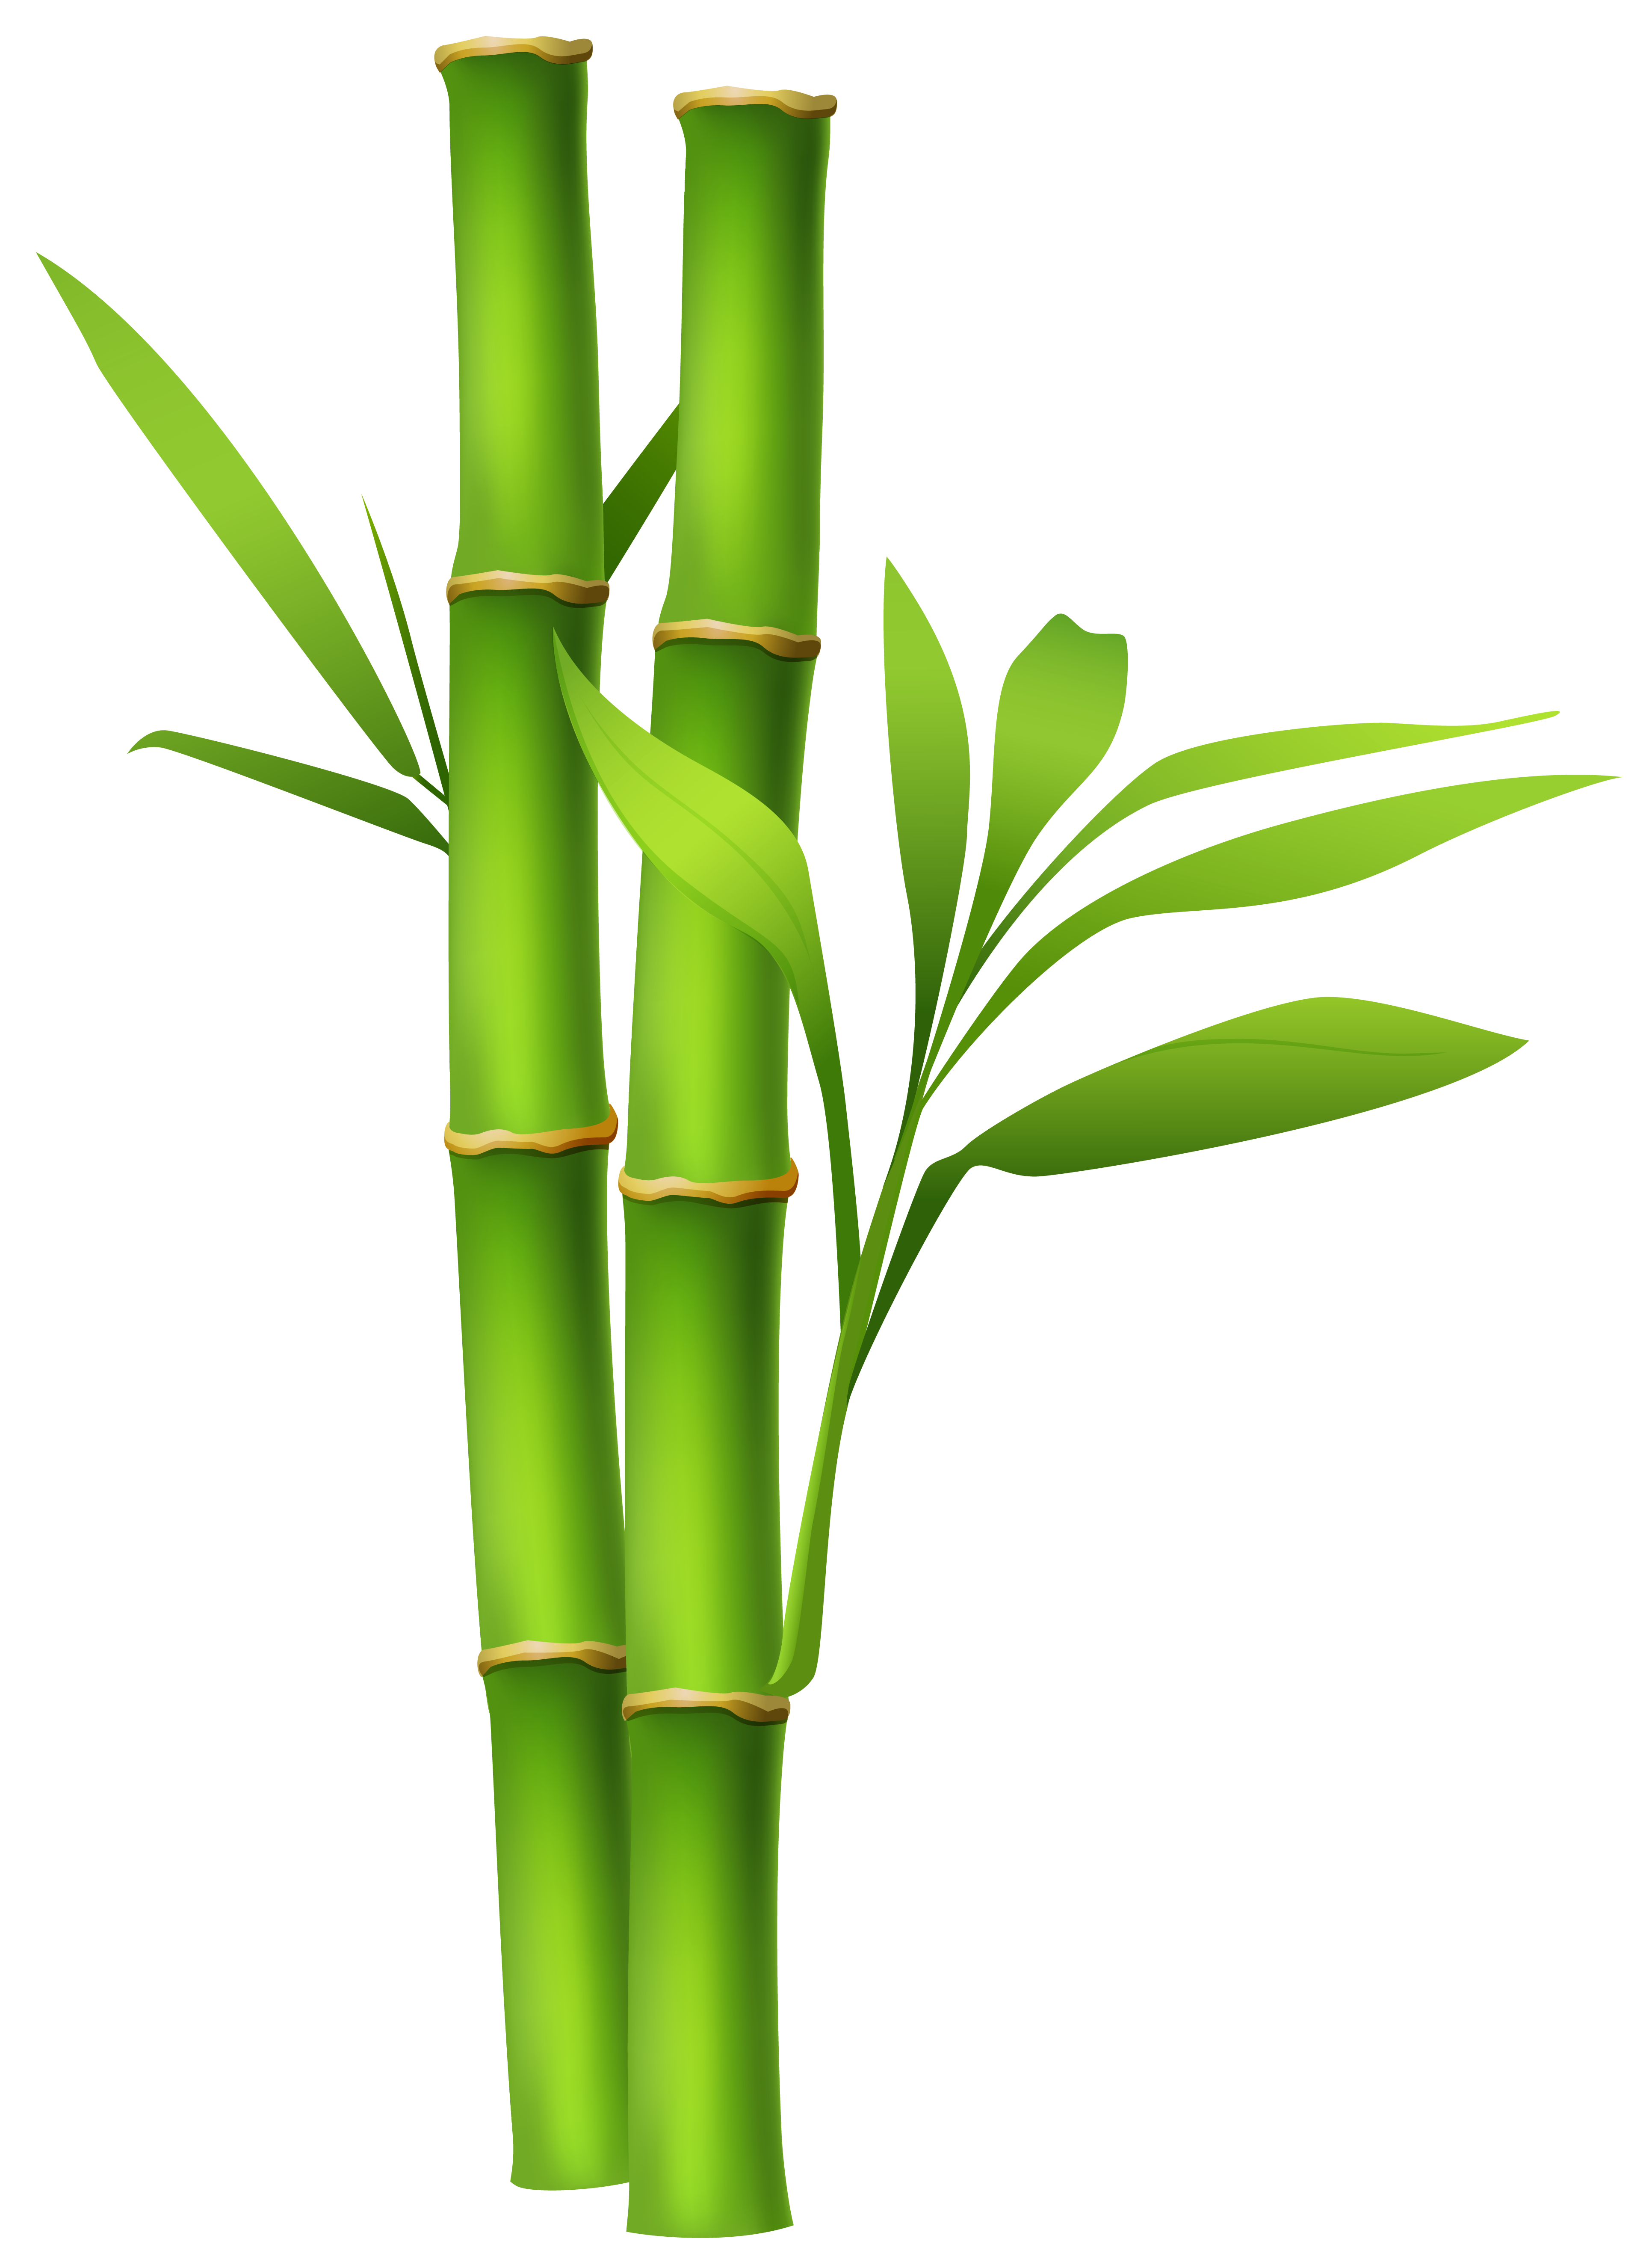 Png image gallery yopriceville. Bamboo clipart jpg library stock